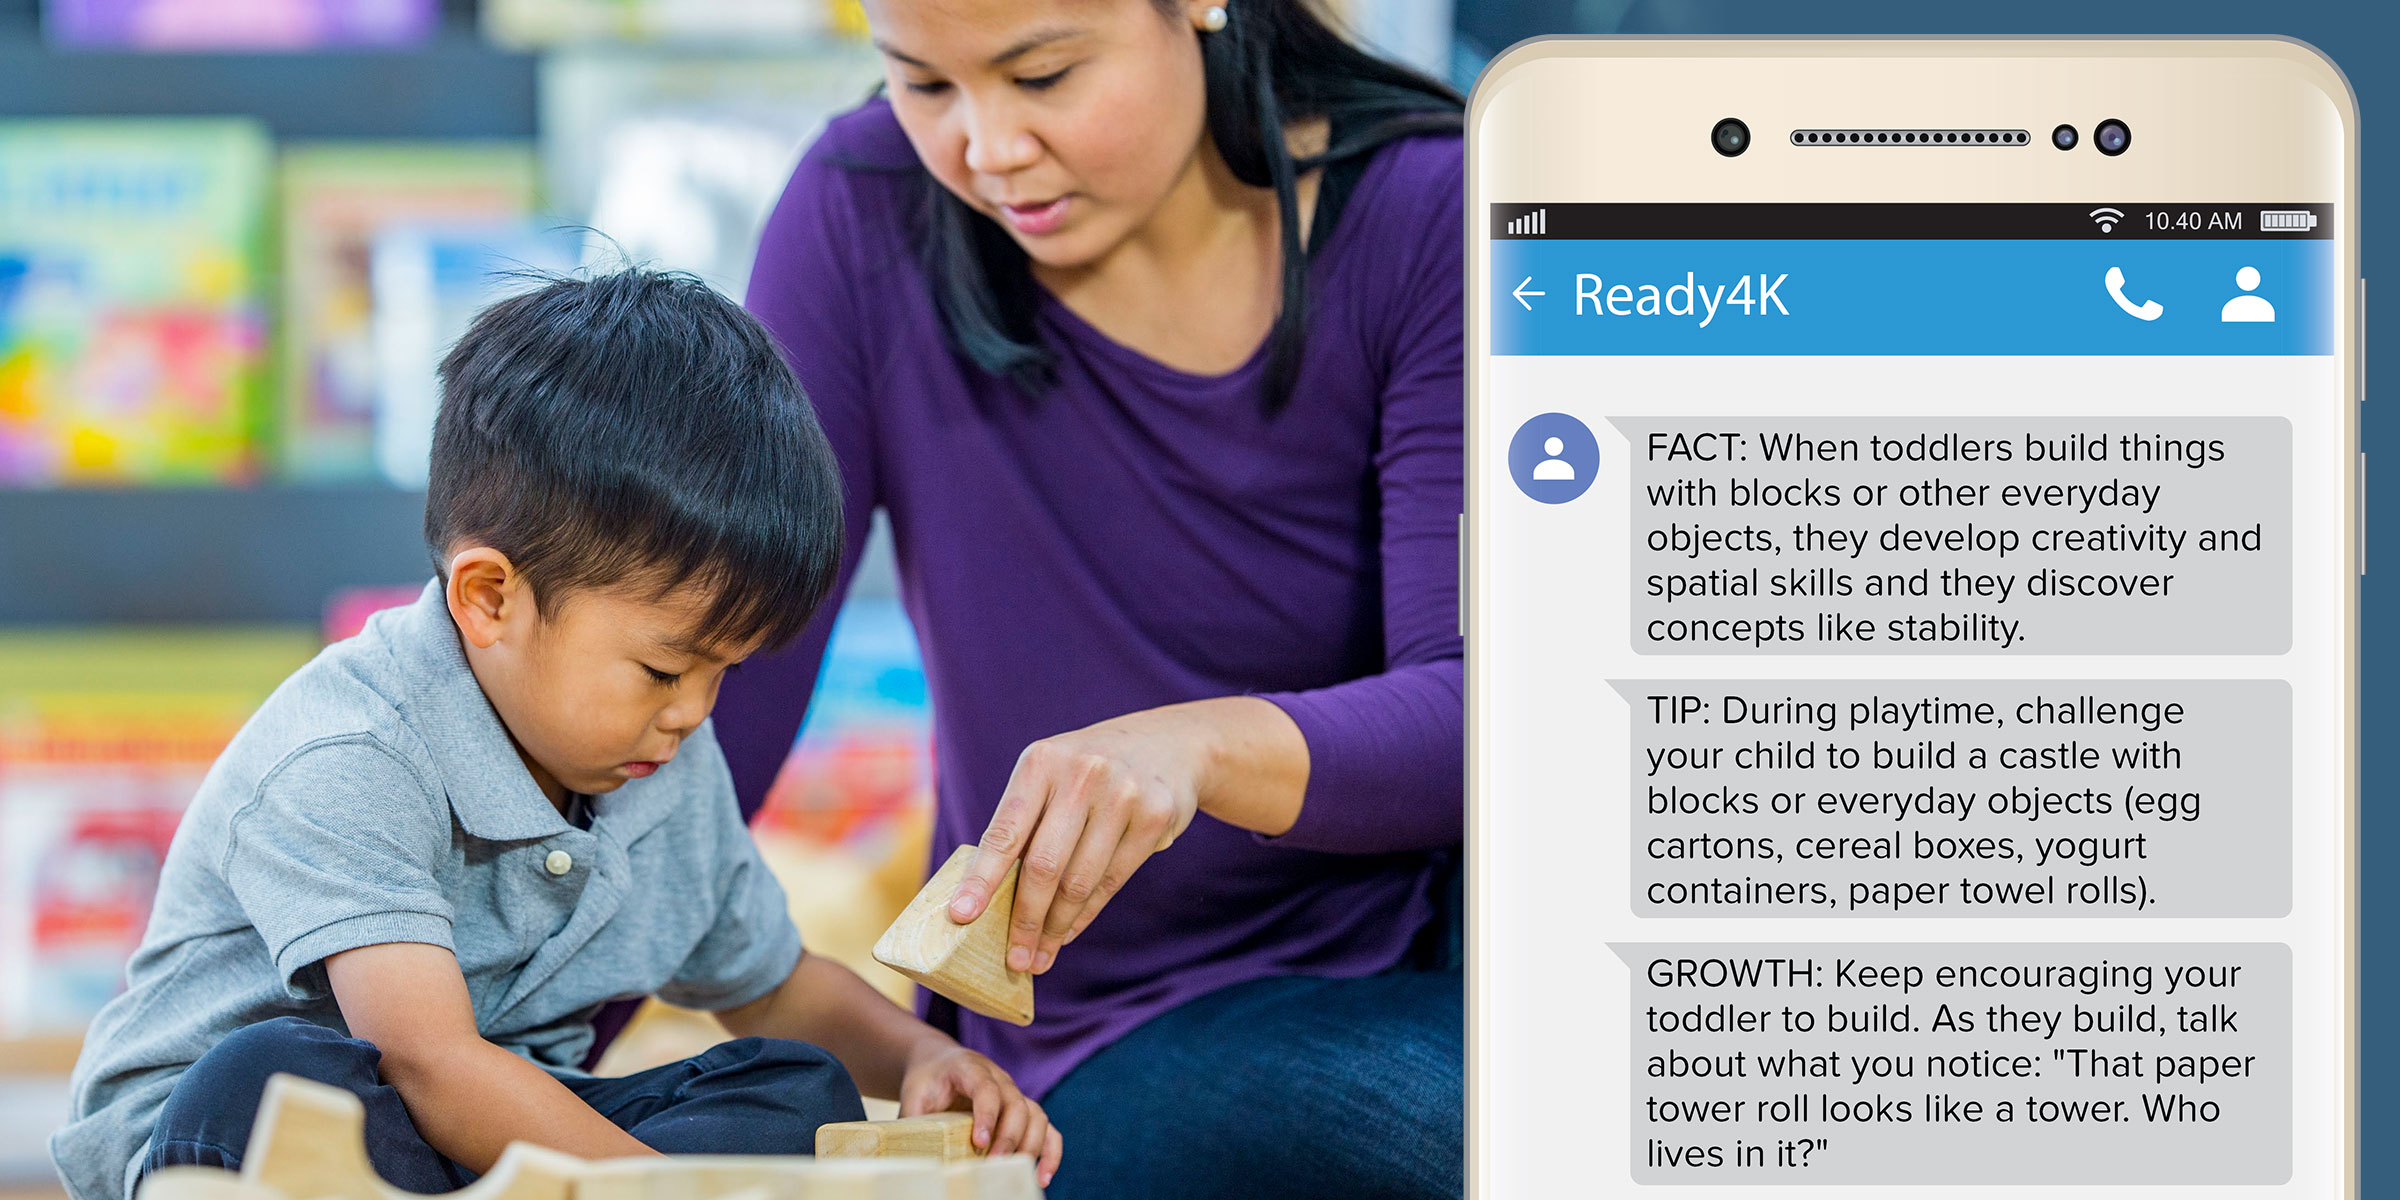 Imua Family Services Launches Digital Texting Program with Ready4K